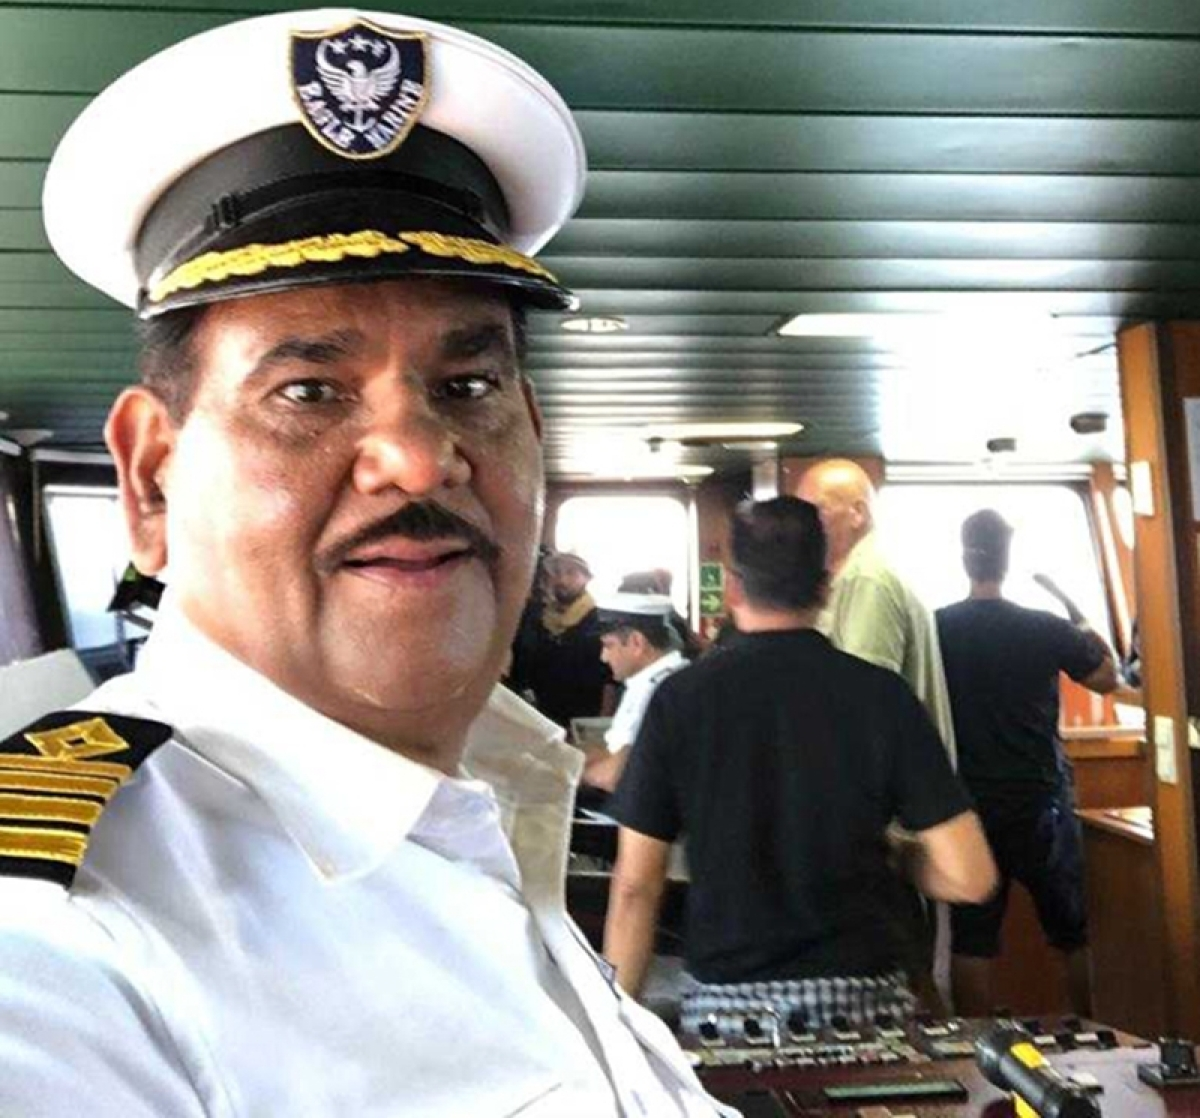 First Look: Satish Kaushik turns Navy officer for Salman Khan's 'Bharat'